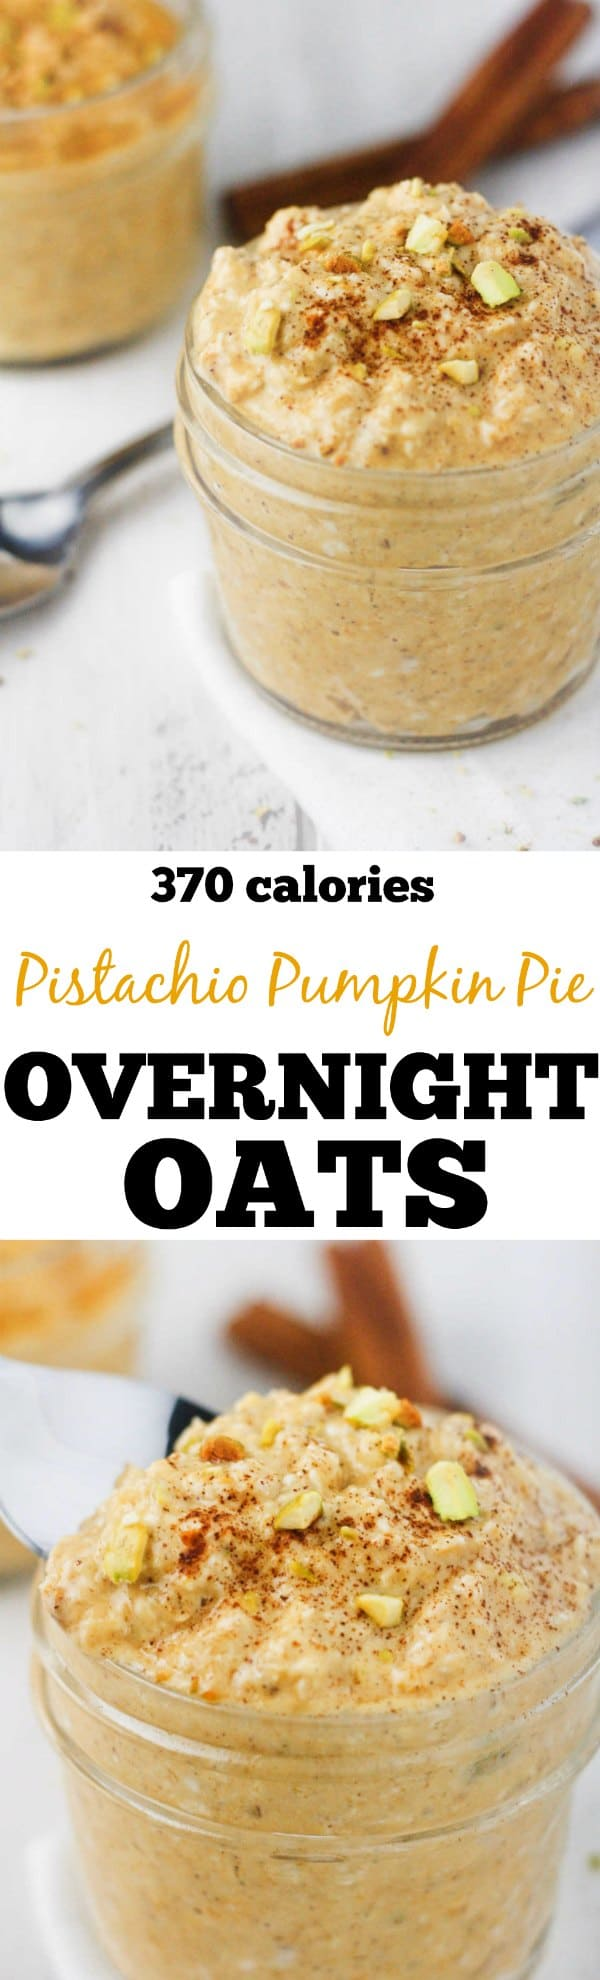 Pistachio Pumpkin Overnight Oats - Deliciously creamy, 5 minute oats made with cinnamon and organic pumpkin puree. www.itscheatdayeveryday.com